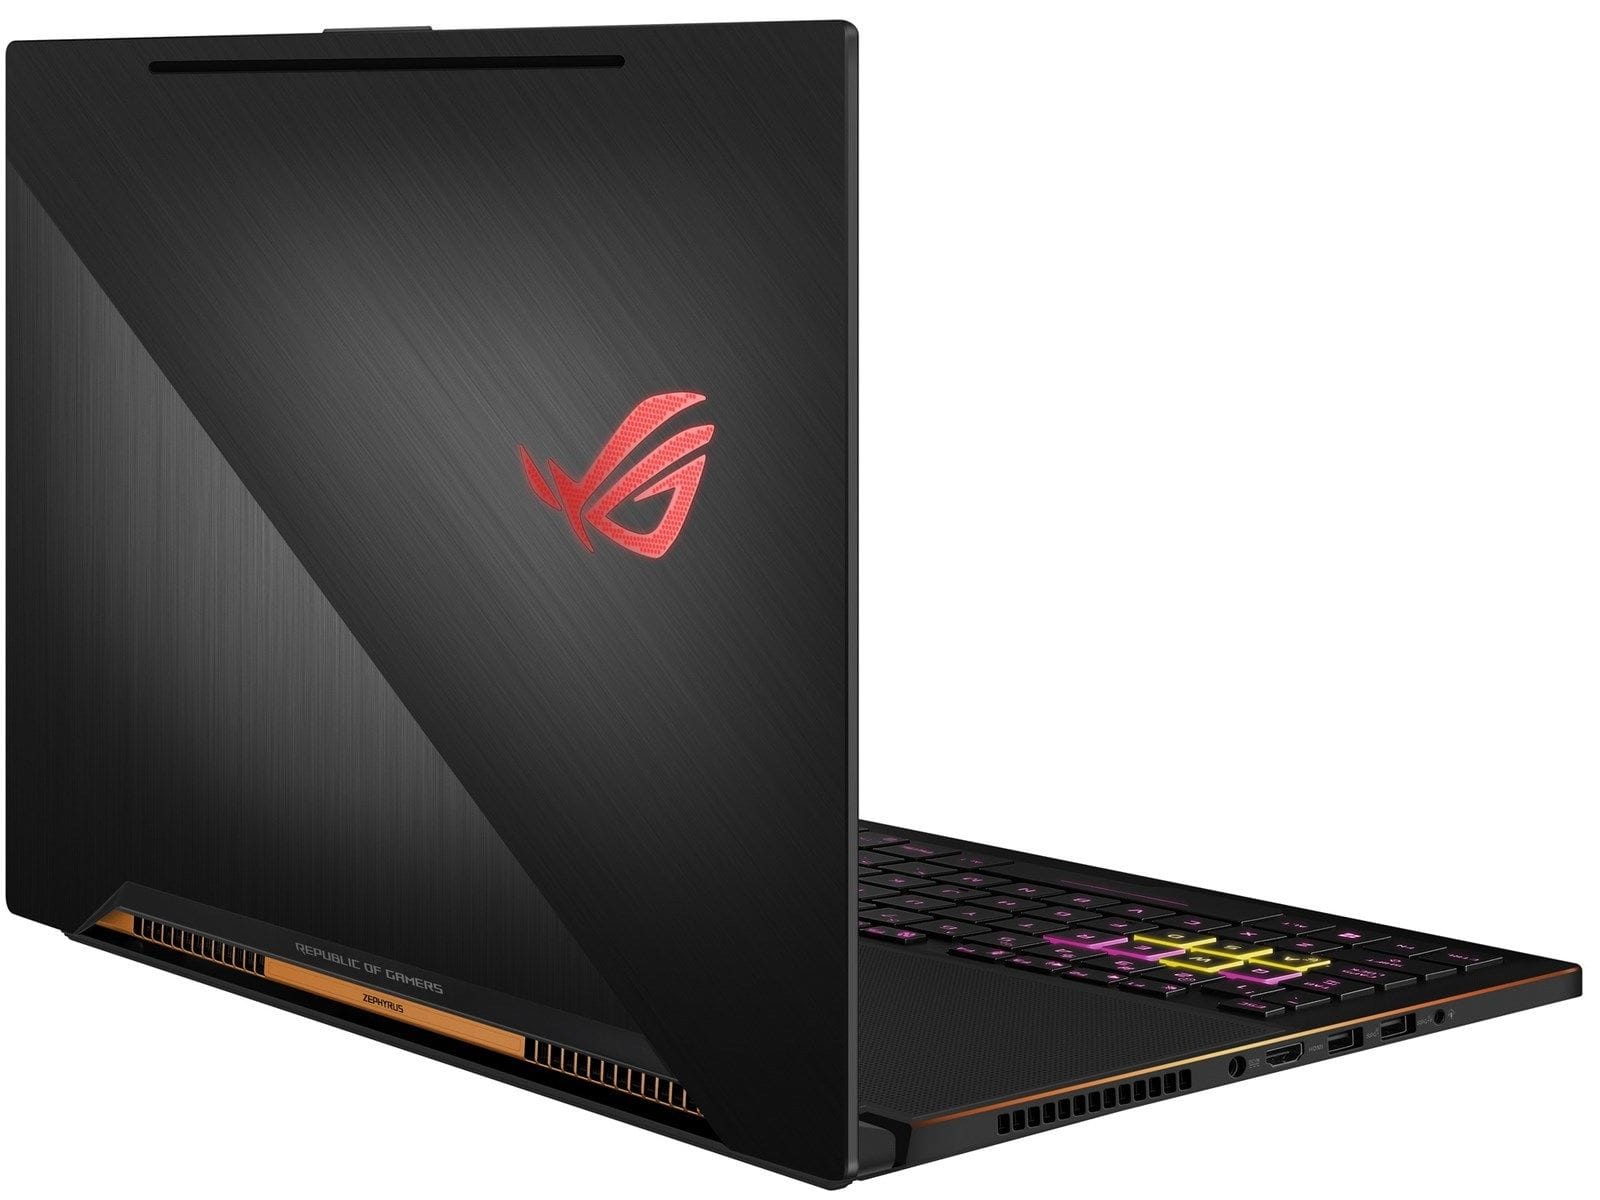 "New Asus GX501GI-XS74 15.6"" G-sync Laptop Intel i7-8750H 16GB 512GB NVMe W10Pro for $1599.99 with Free Shipping"